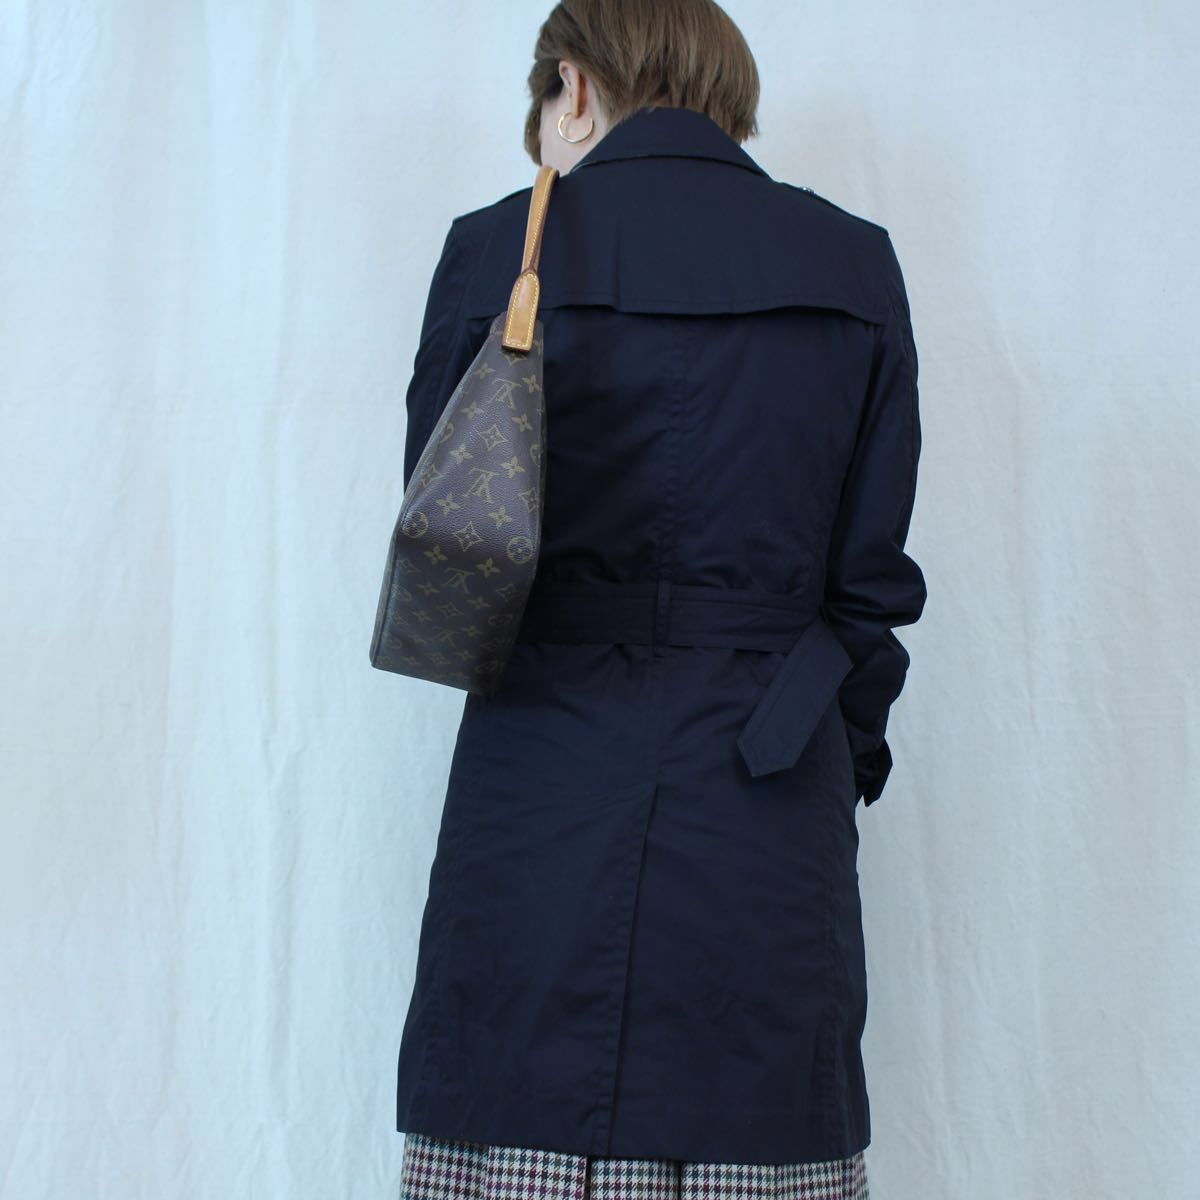 BURBERRY BRIT TRENCH COAT WITH QUILTING LINER MADE IN CHINA/バーバリーブリットキルティングライナー付トレンチコート_画像9